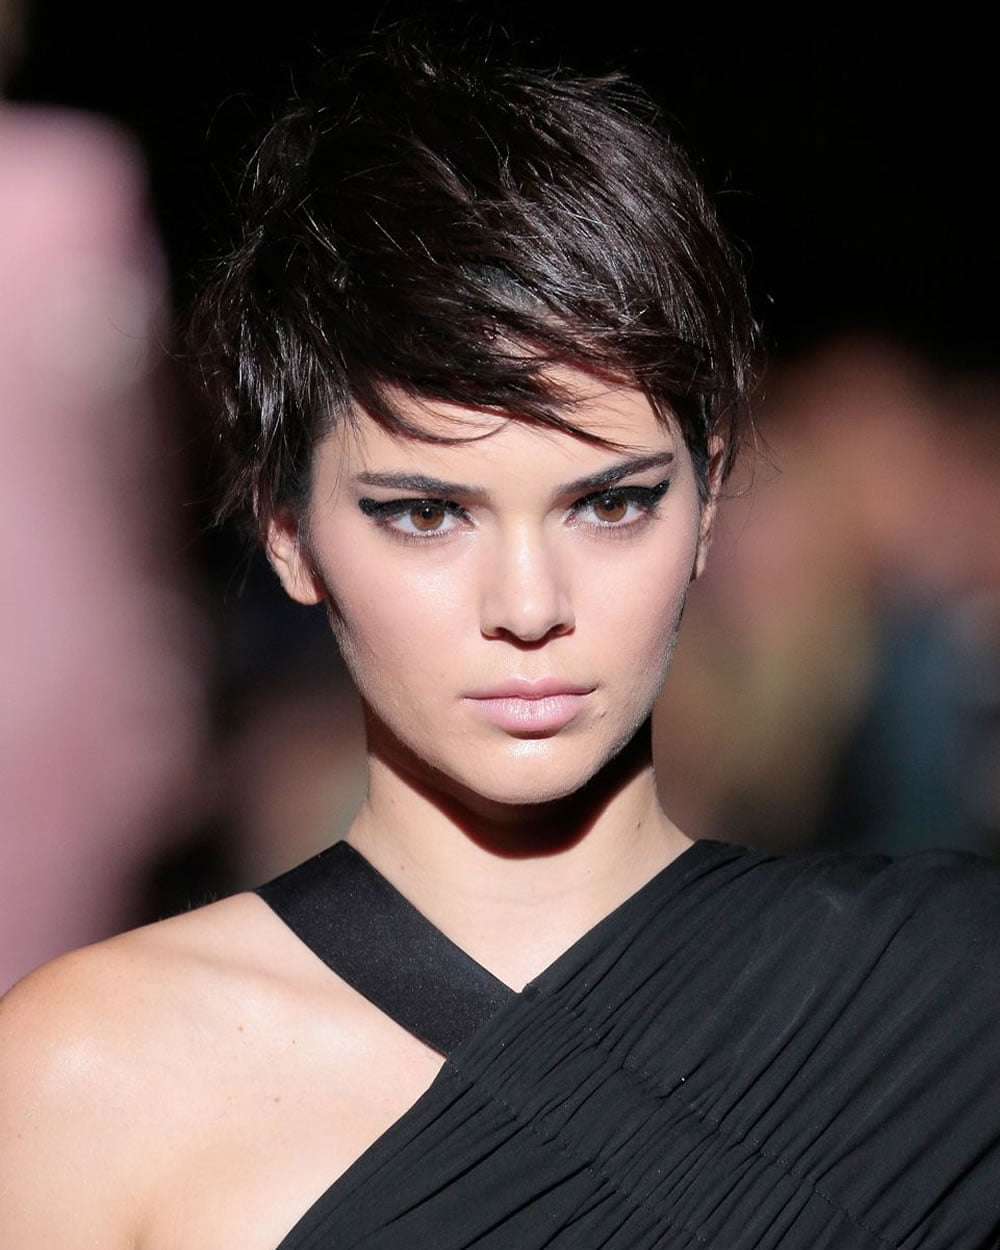 21 Trendy Short Haircut Images And Pixie Hairstyles You Ll Really Love Hairstyles